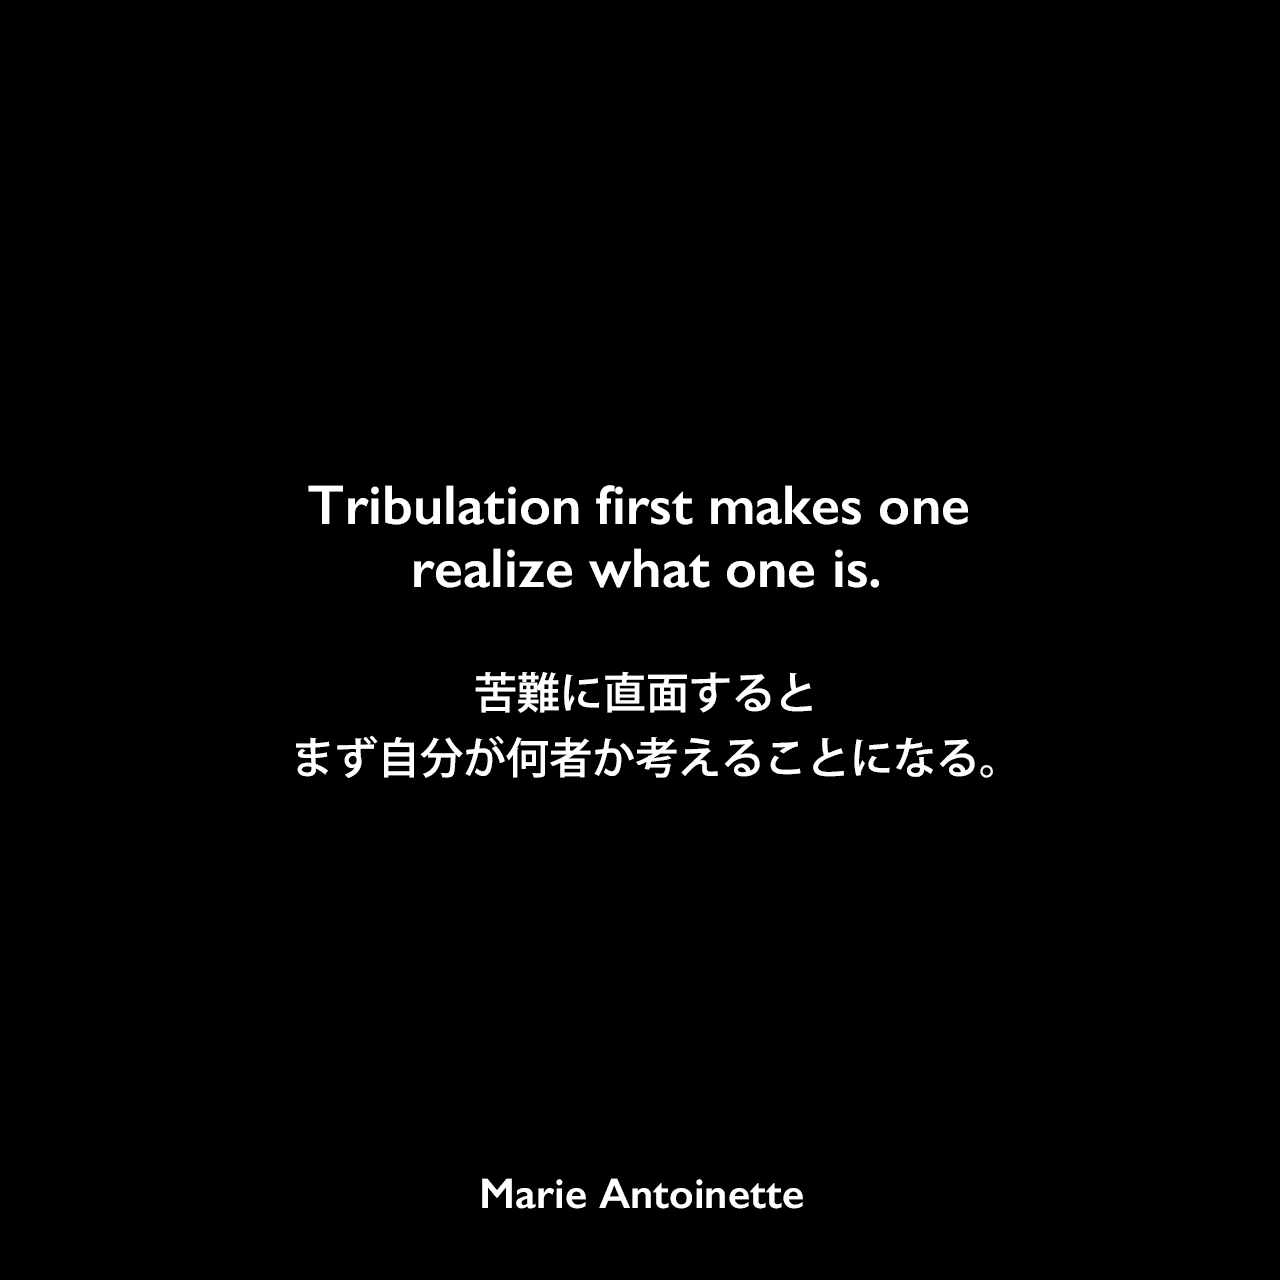 Tribulation first makes one realize what one is.苦難に直面すると、まず自分が何者か考えることになる。Marie Antoinette